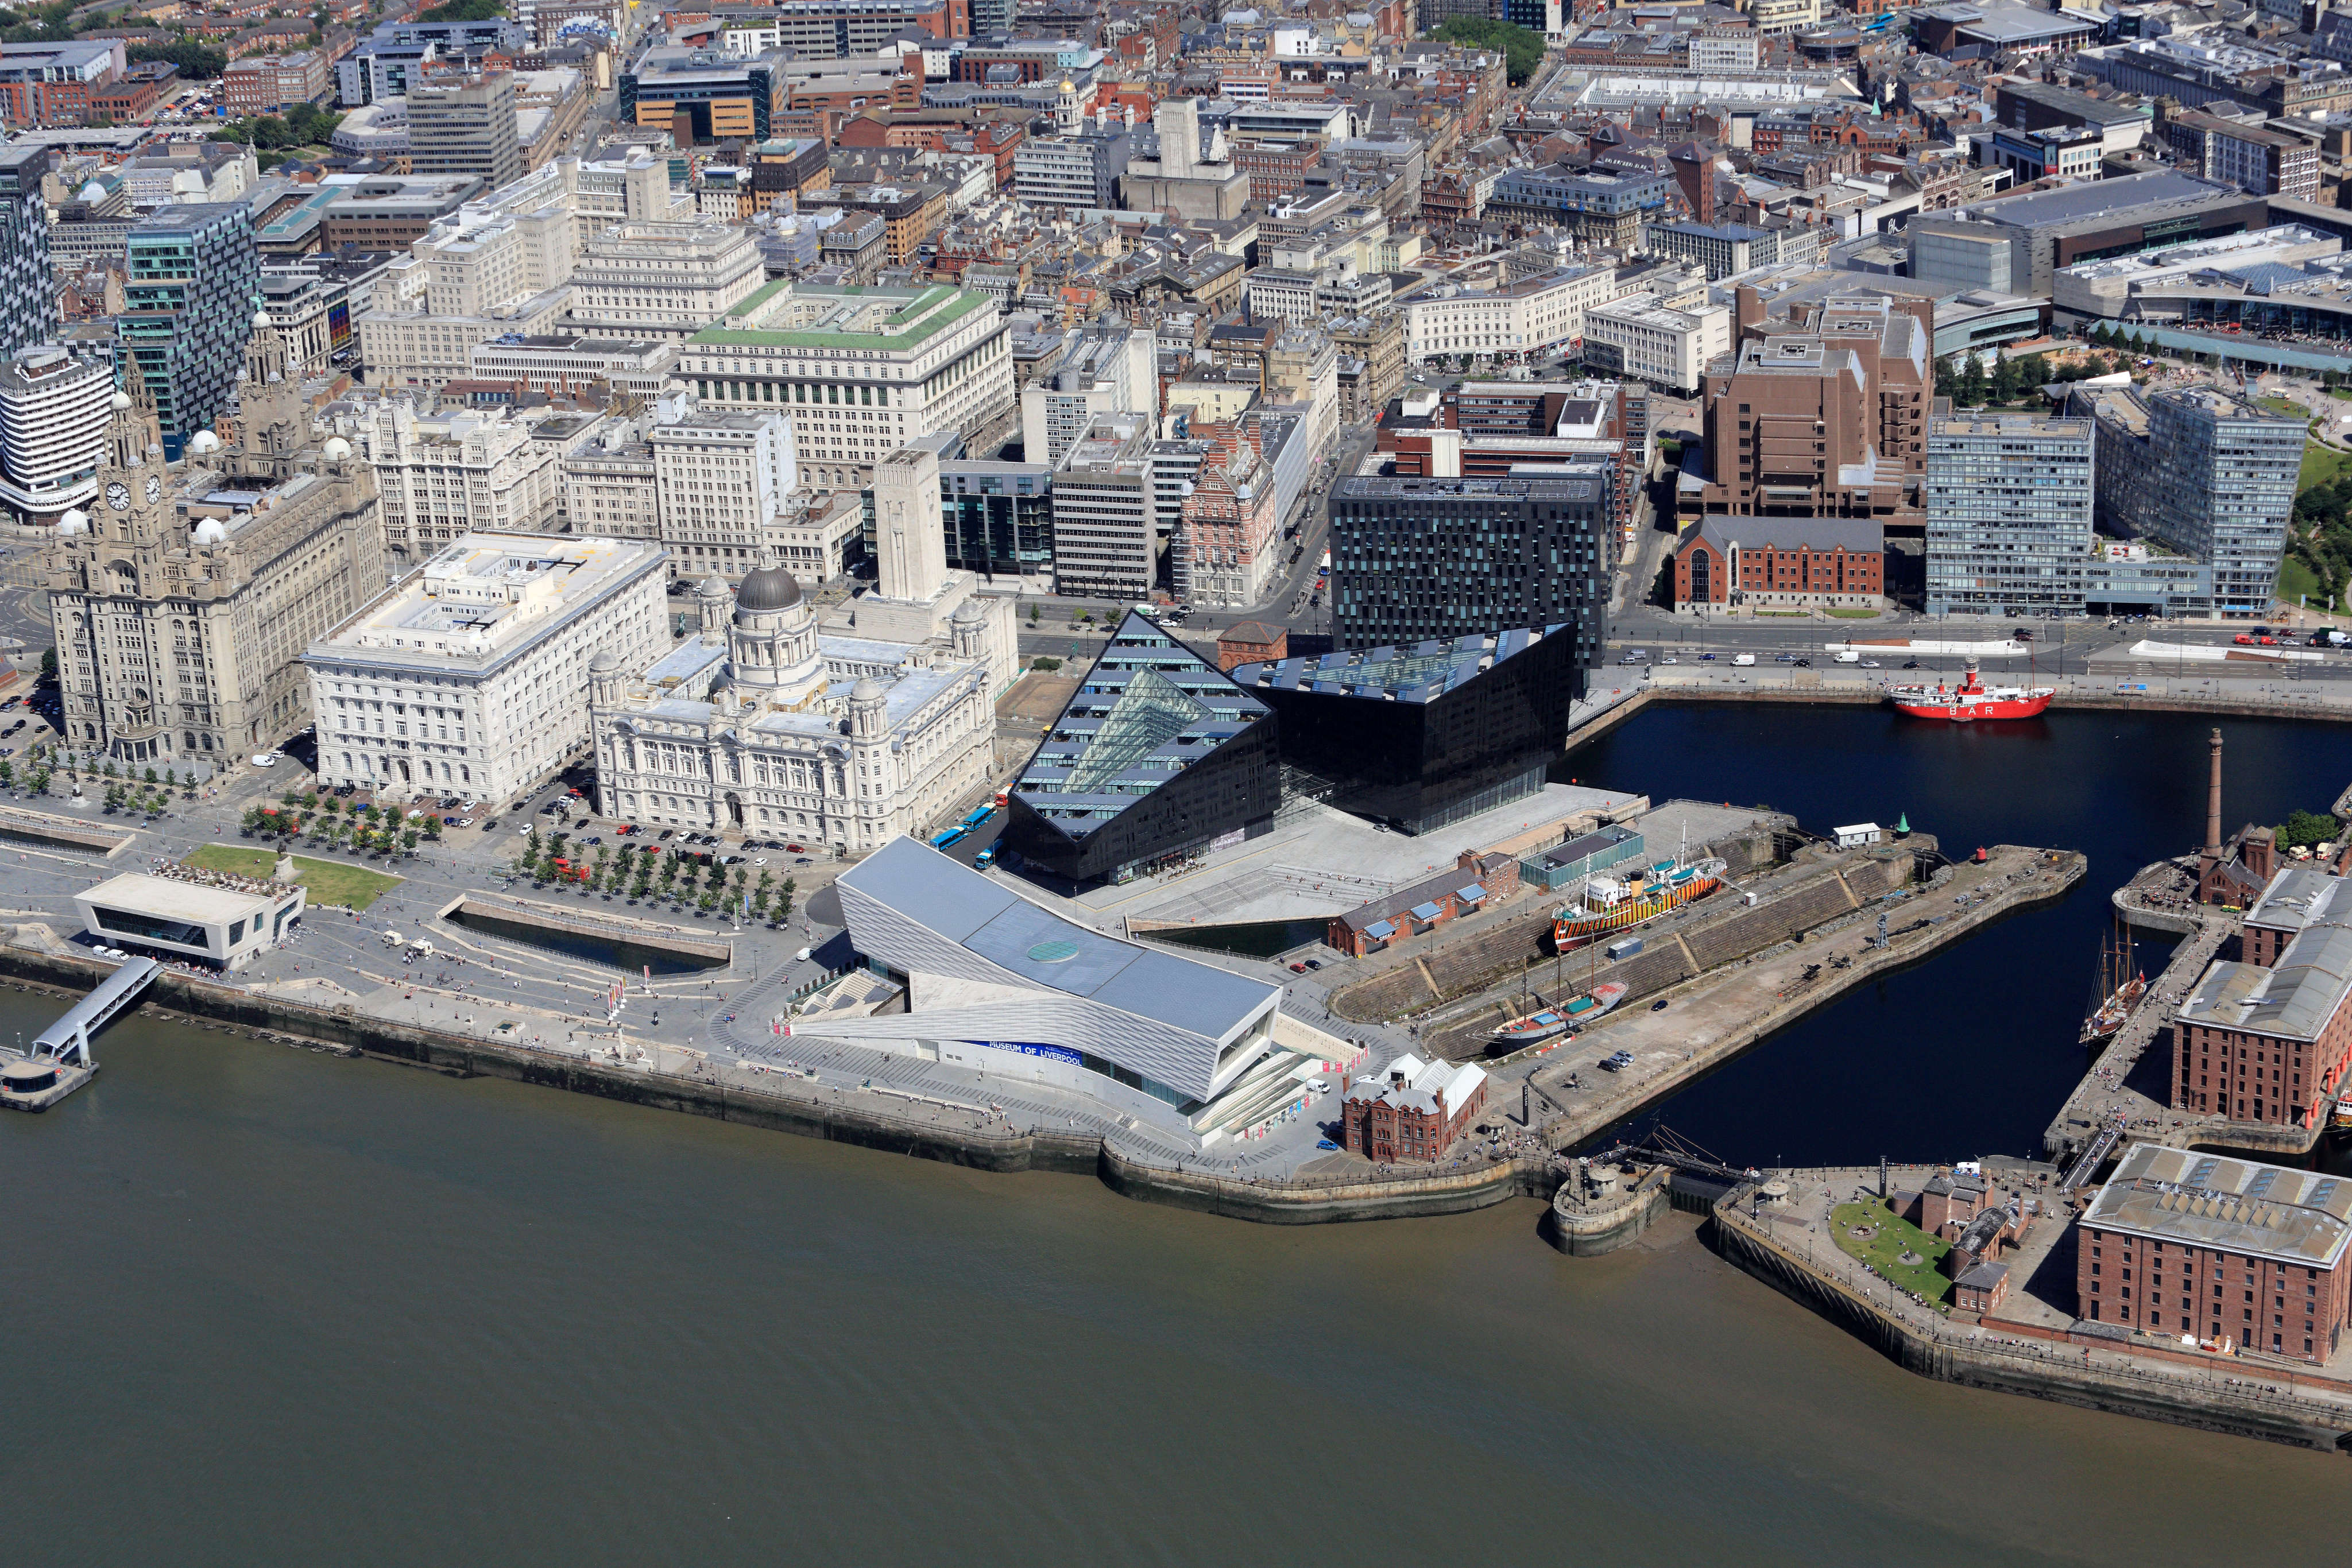 Liverpool's iconic waterfront.